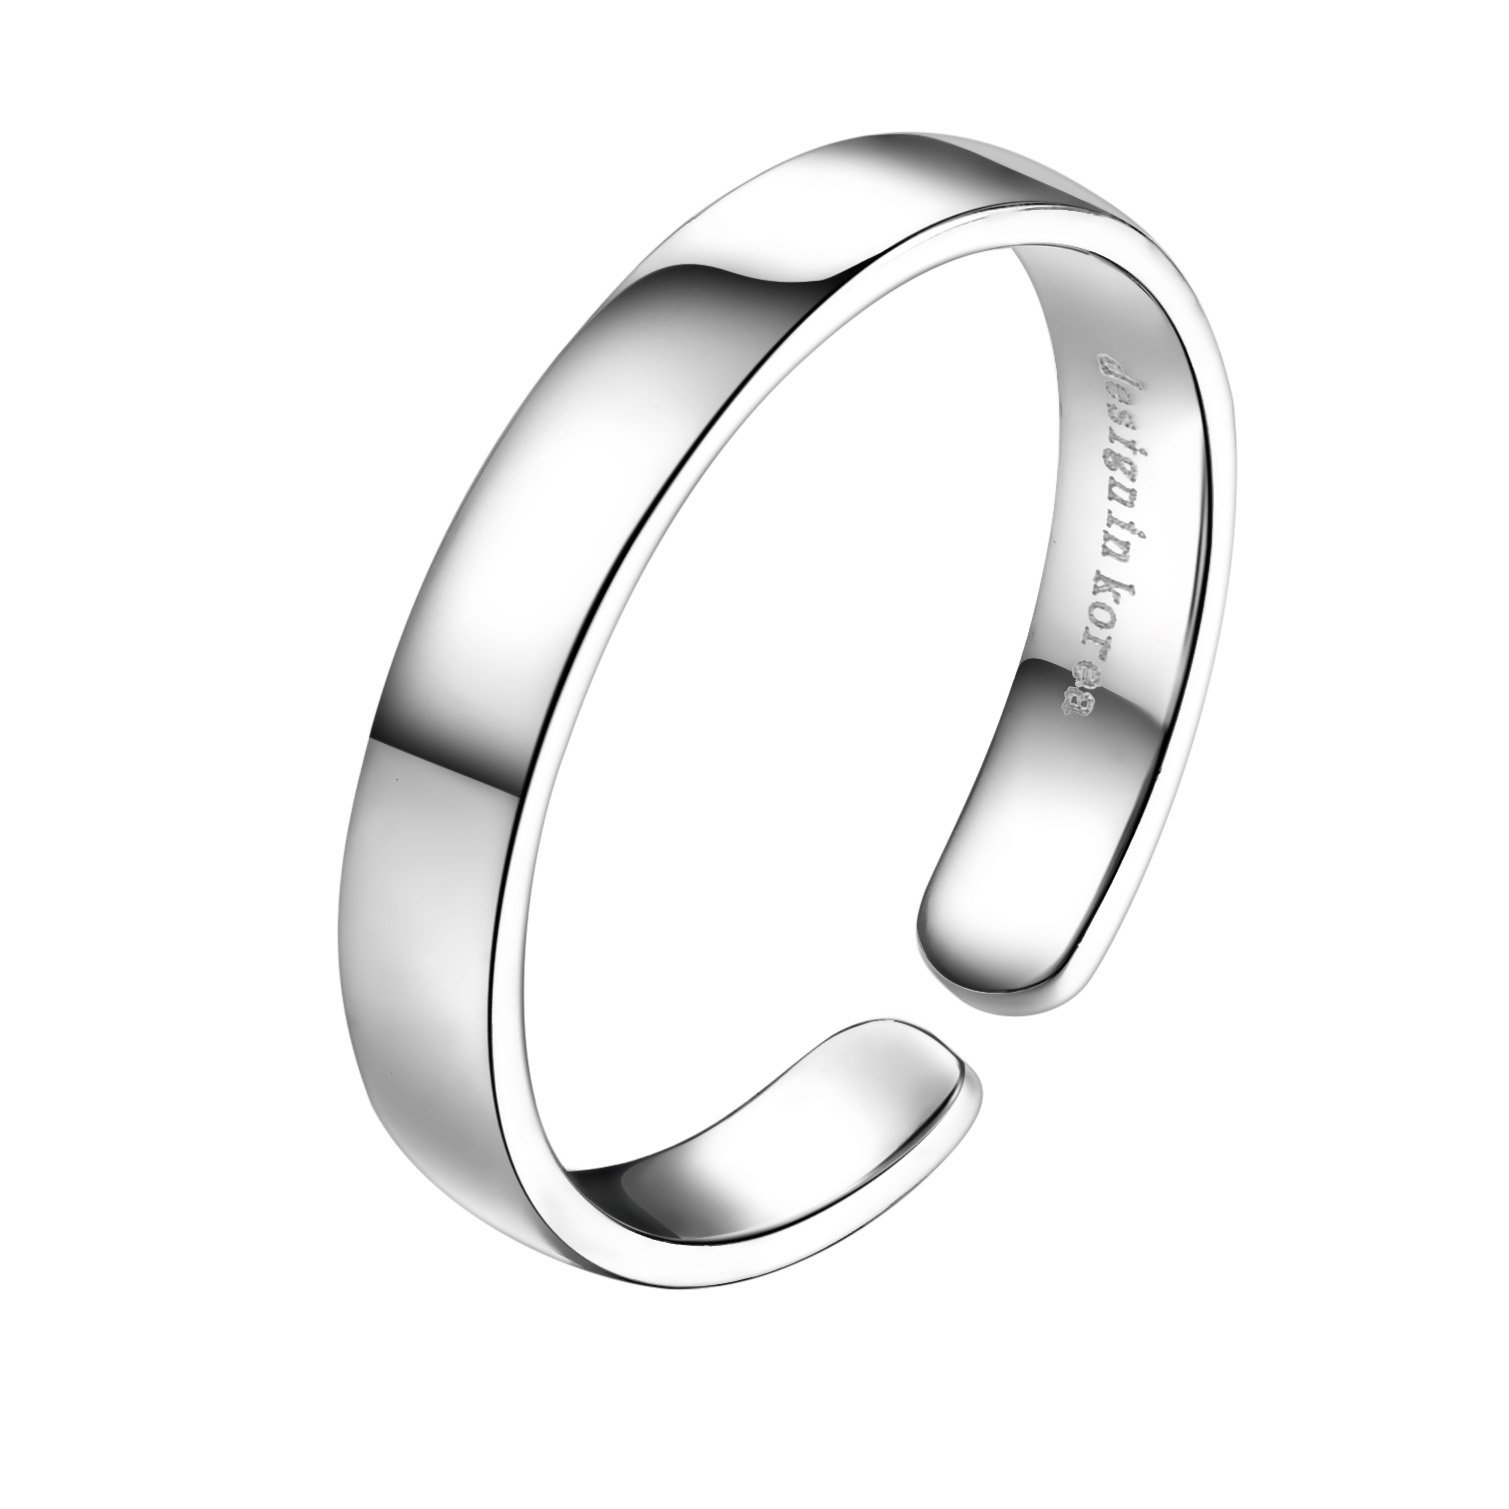 Sterling Silver Midi Above Knuckle Pinky Open Toe Finger Ring Band Thumb Ring 3mm Width US Size 4.25-6